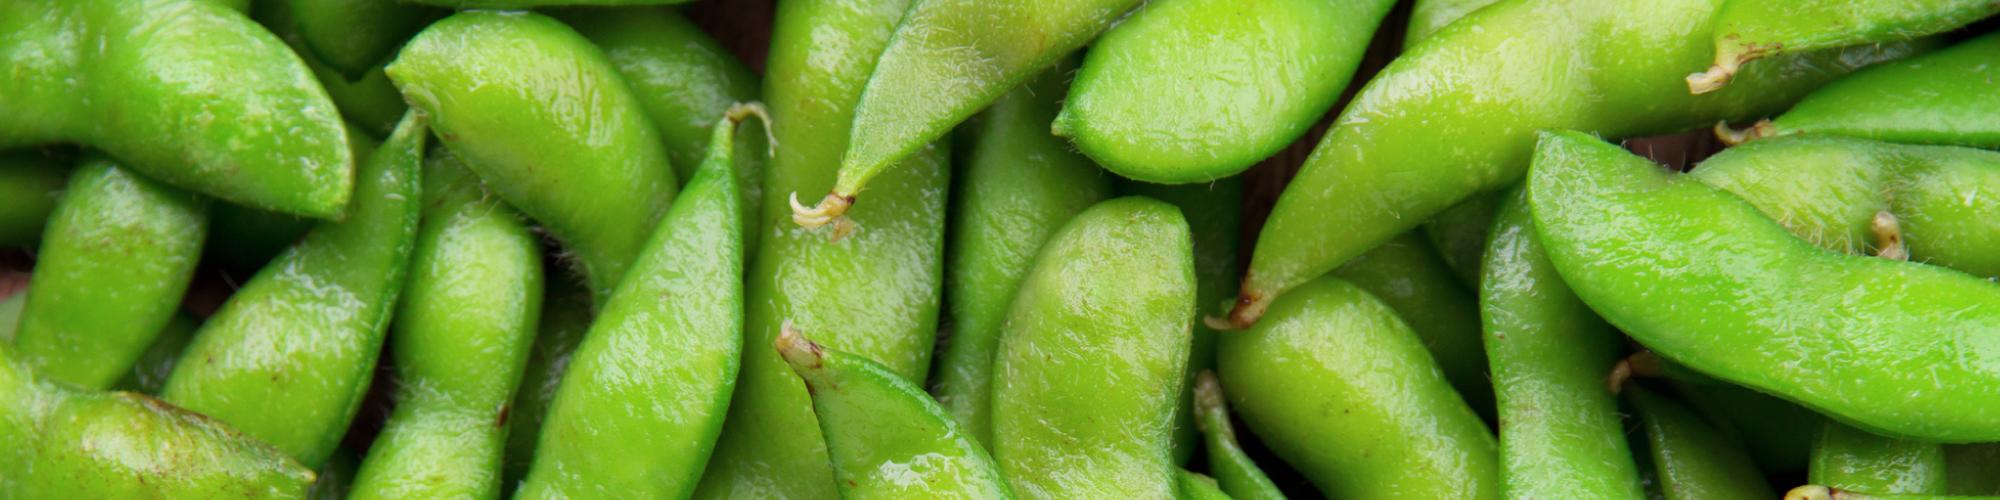 The Latest Research on Soy and Cancer